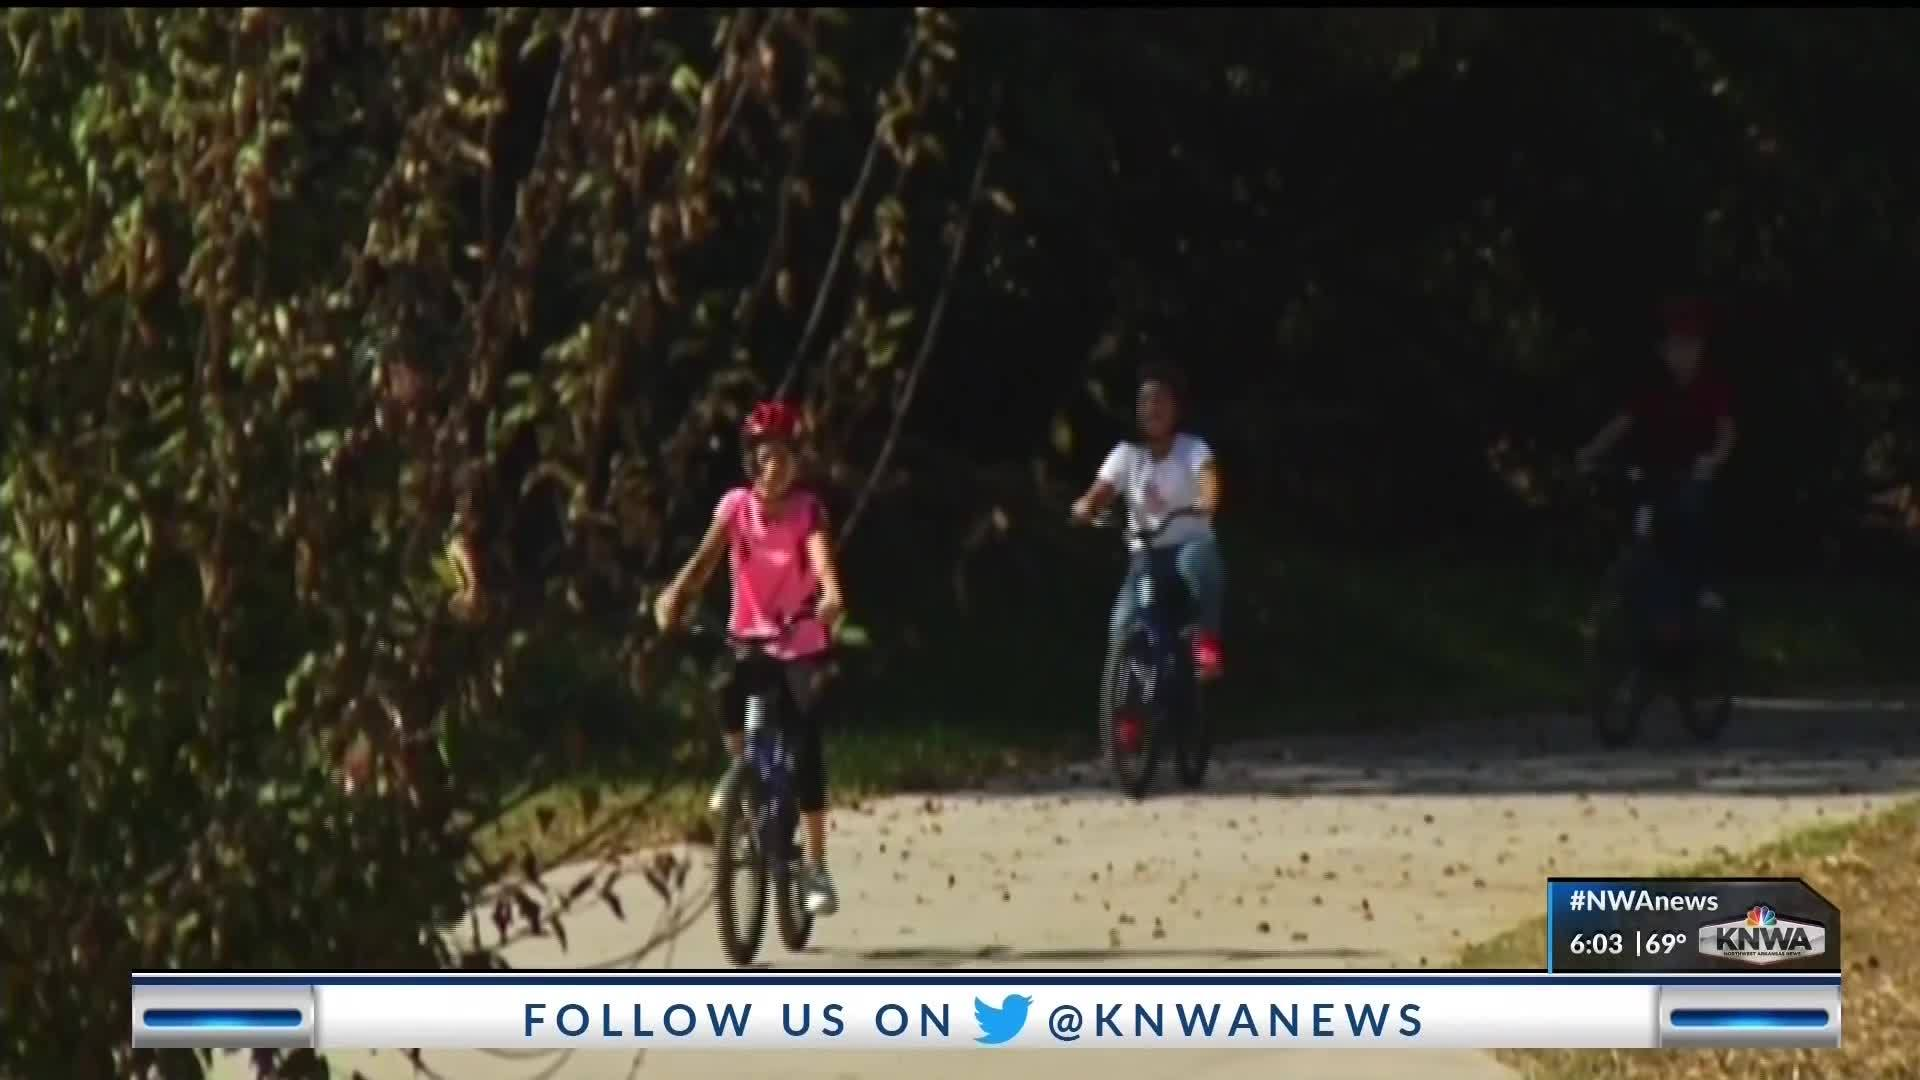 Drivers_on_Rogers_Bike_Trail__KNWA__8_20190418000458